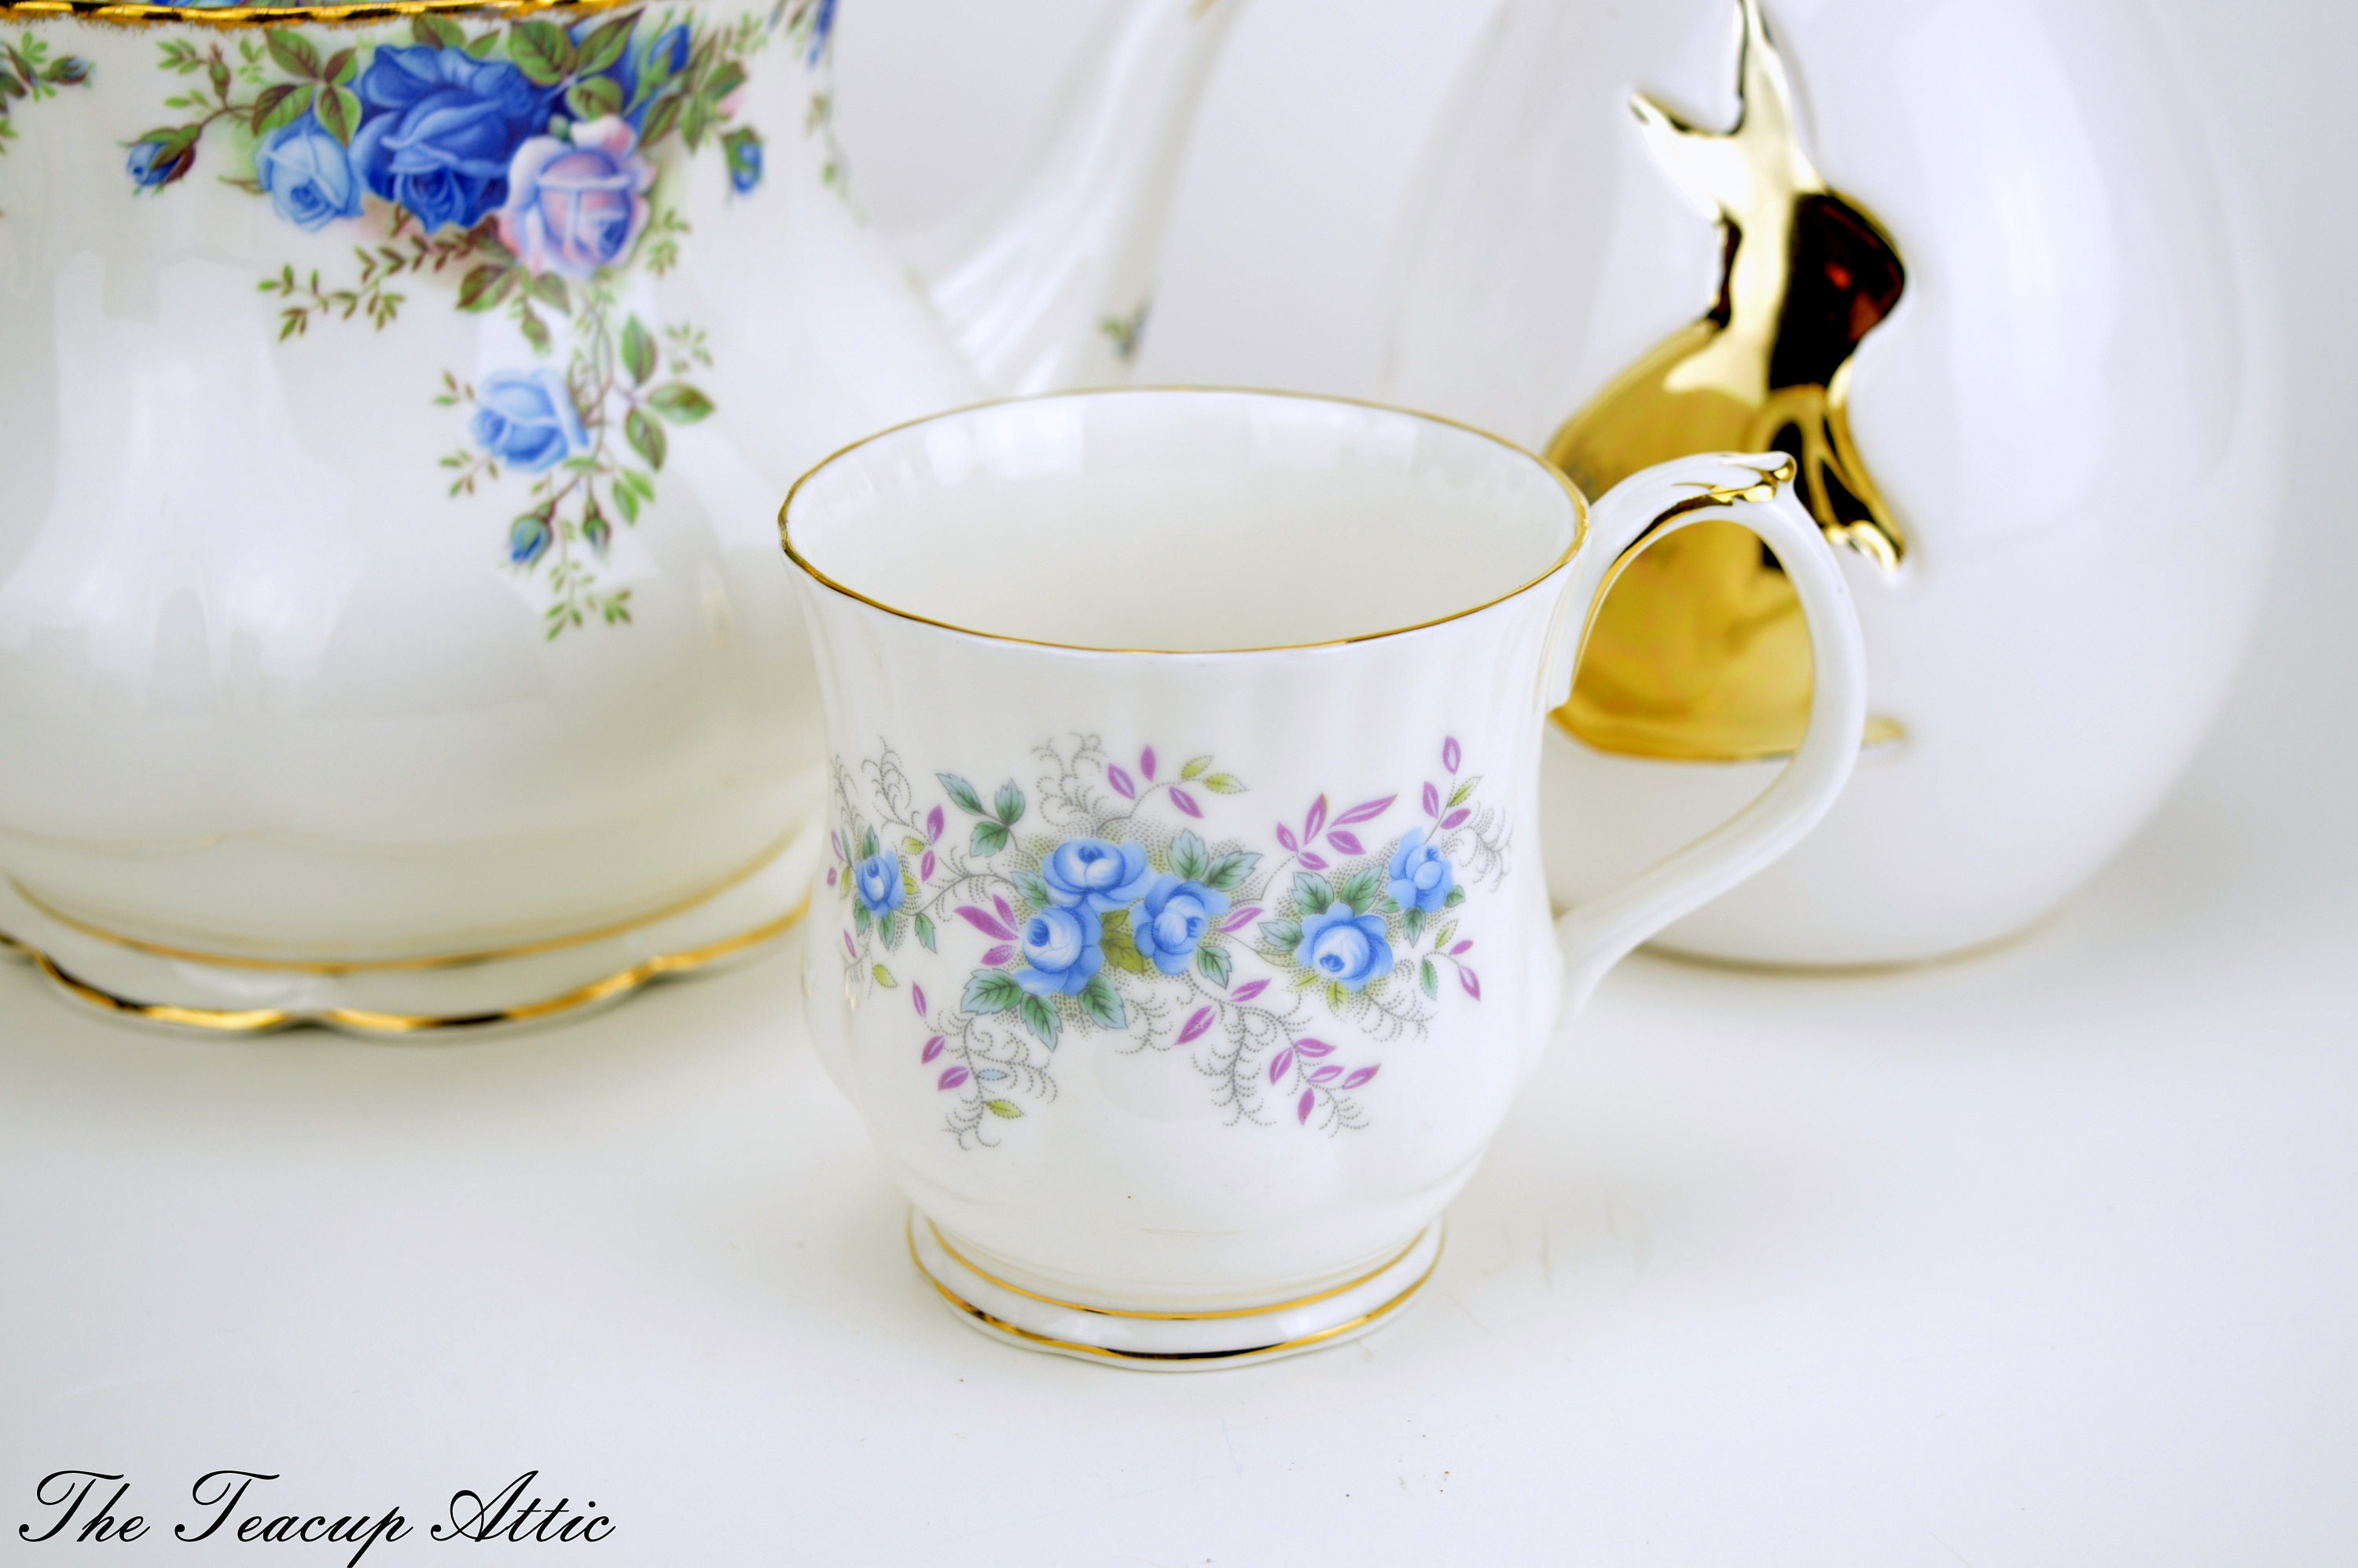 Royal Albert Blue Blossom Mug, Vintage English Bone China Mug, ca. 1989-1998